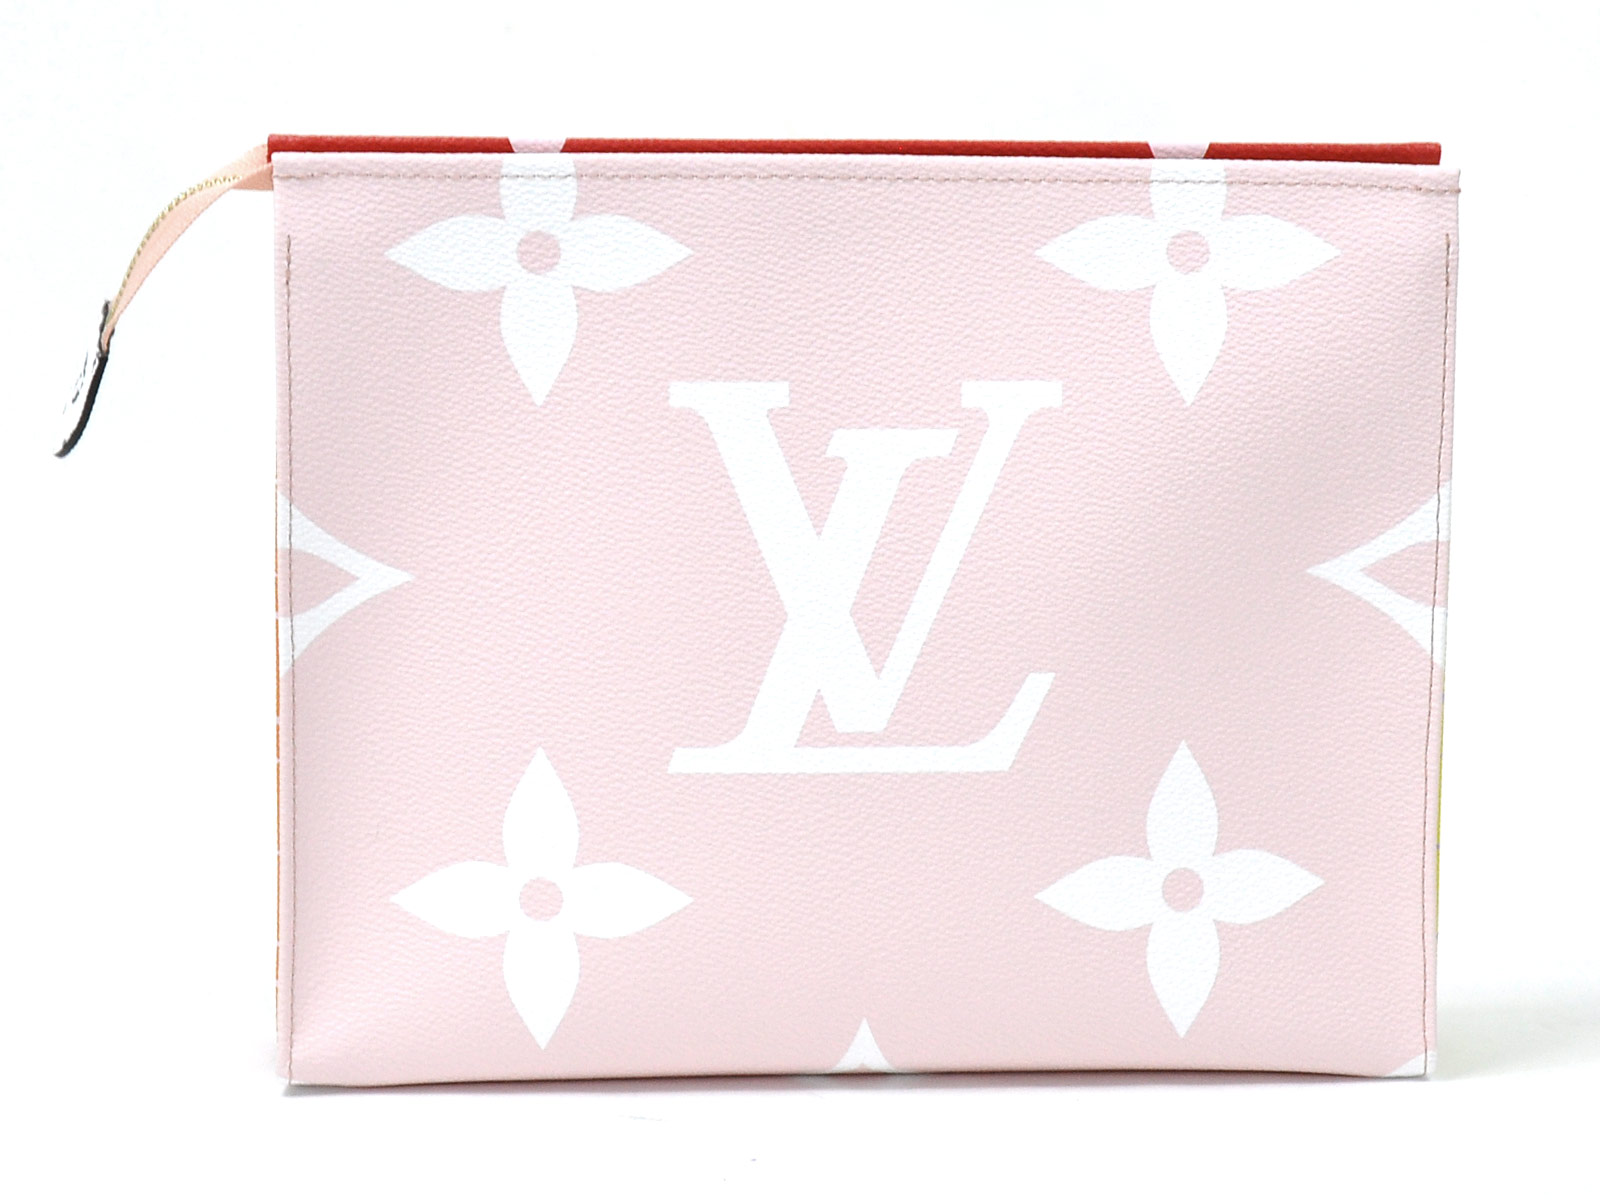 Auth-Louis-Vuitton-Monogram-Giant-Pochette-Toilette-Clutch-Bag-Rouge-Pink-96998 thumbnail 6